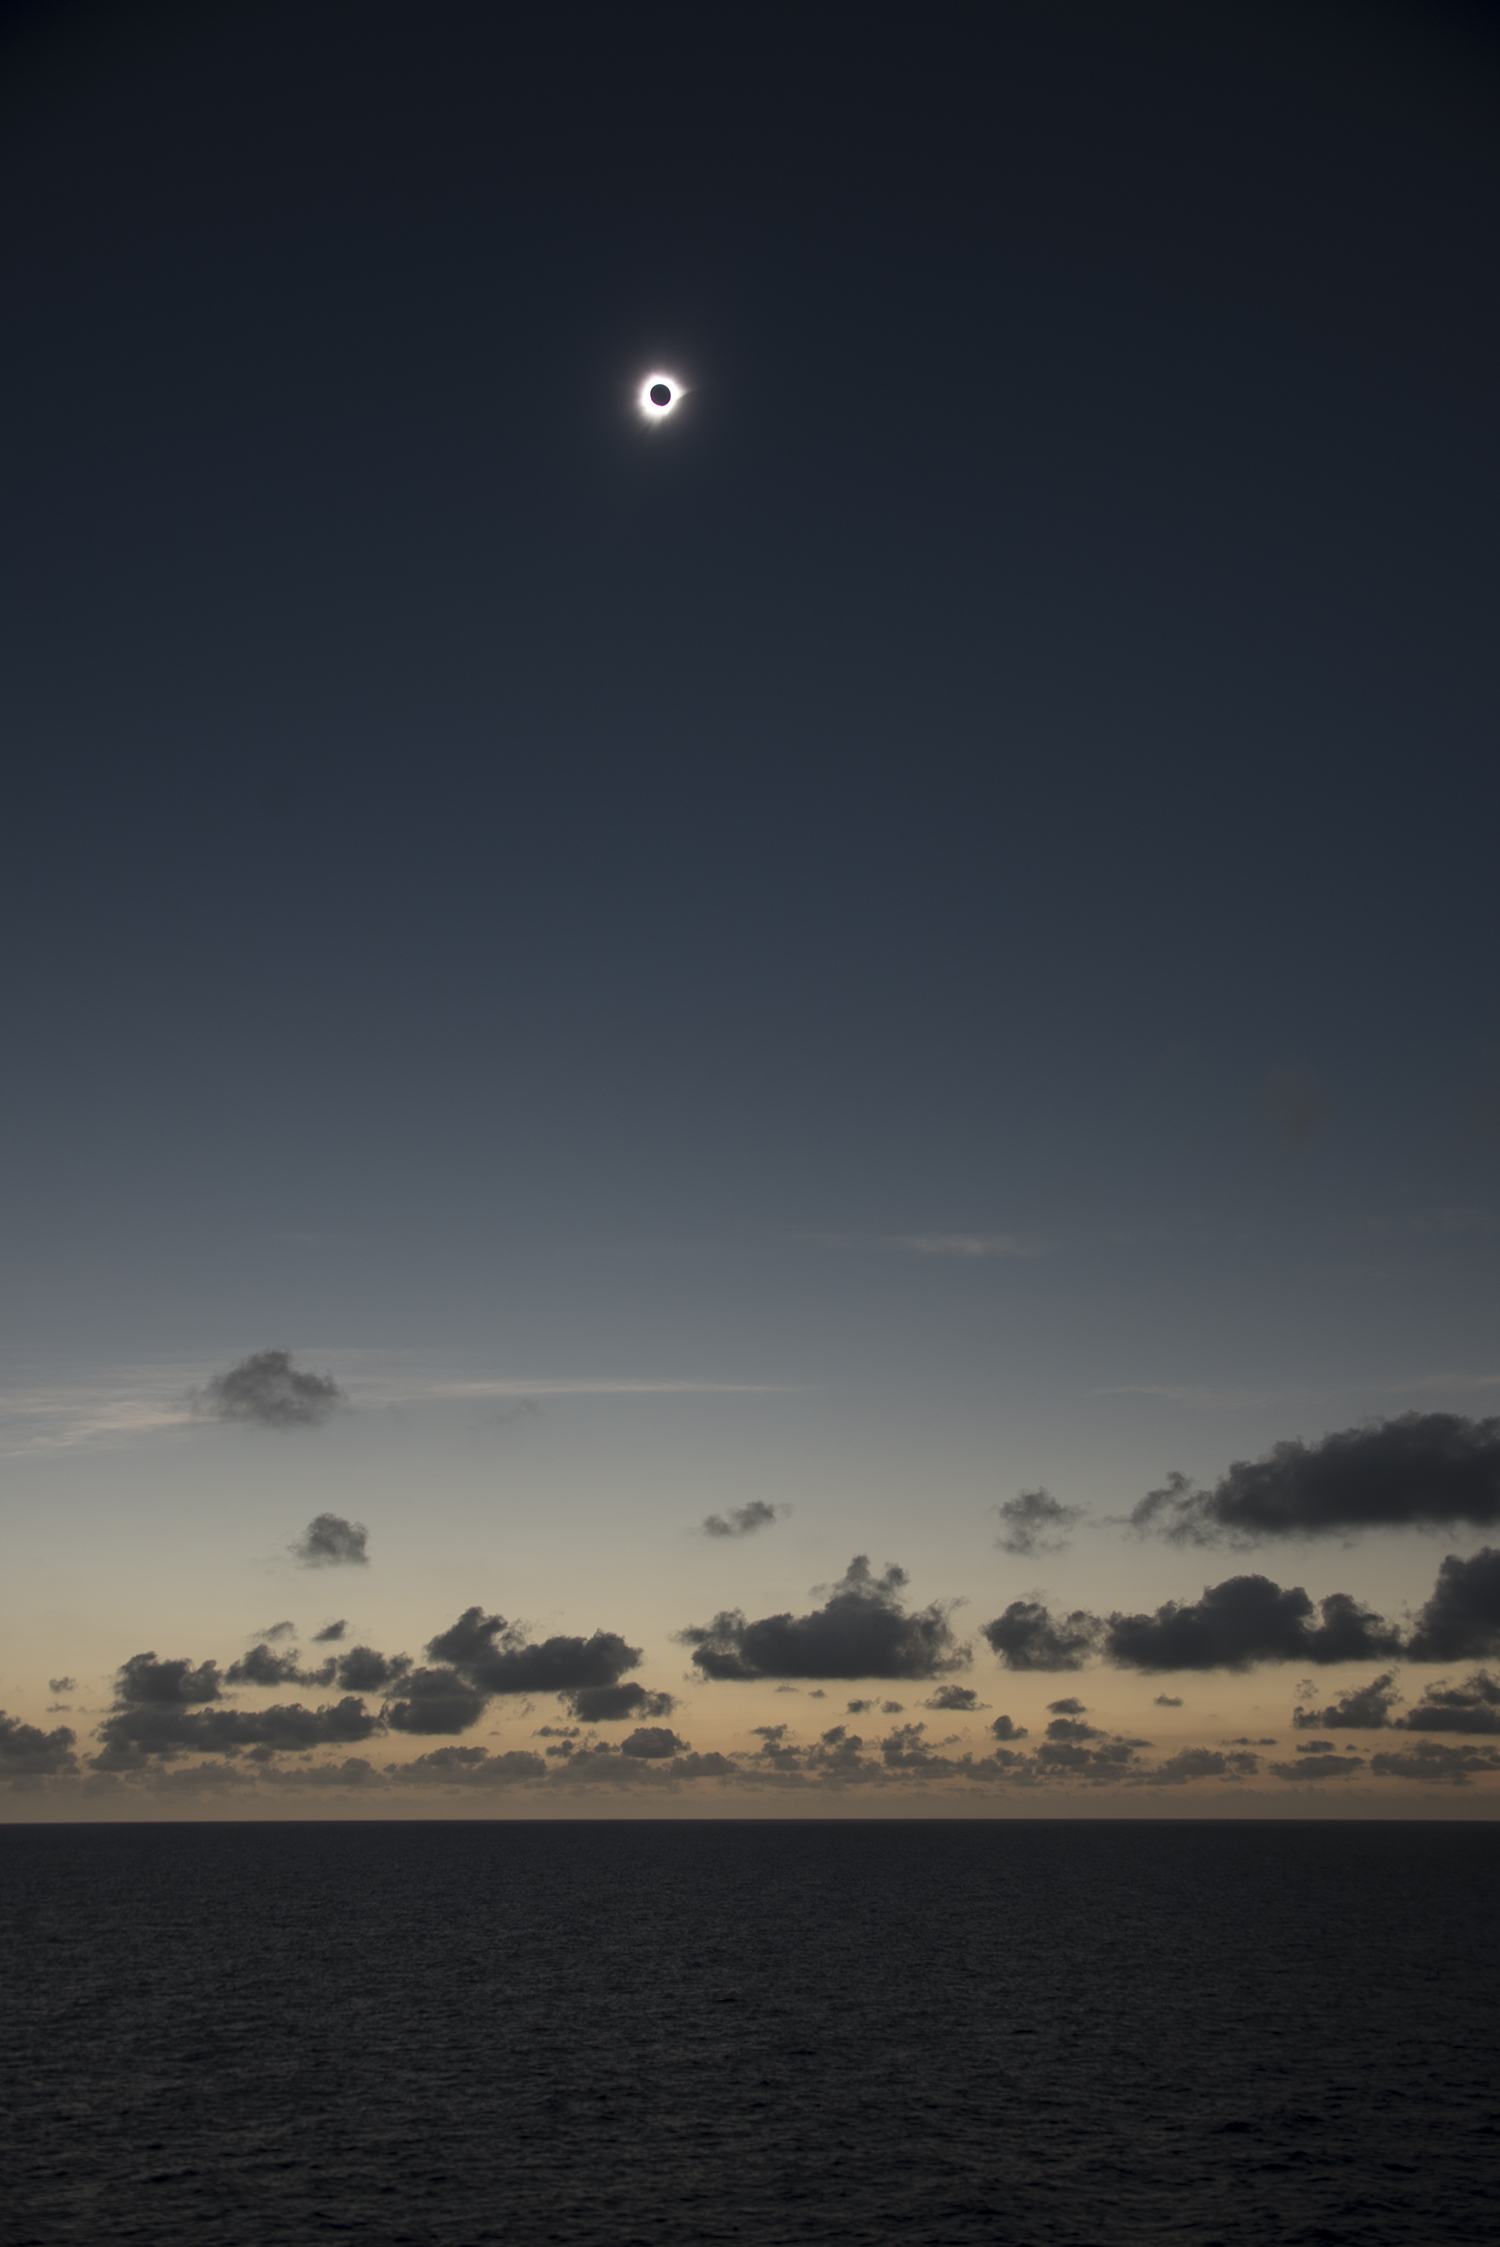 Wide angle view of the eclipse by Michael Zeiler